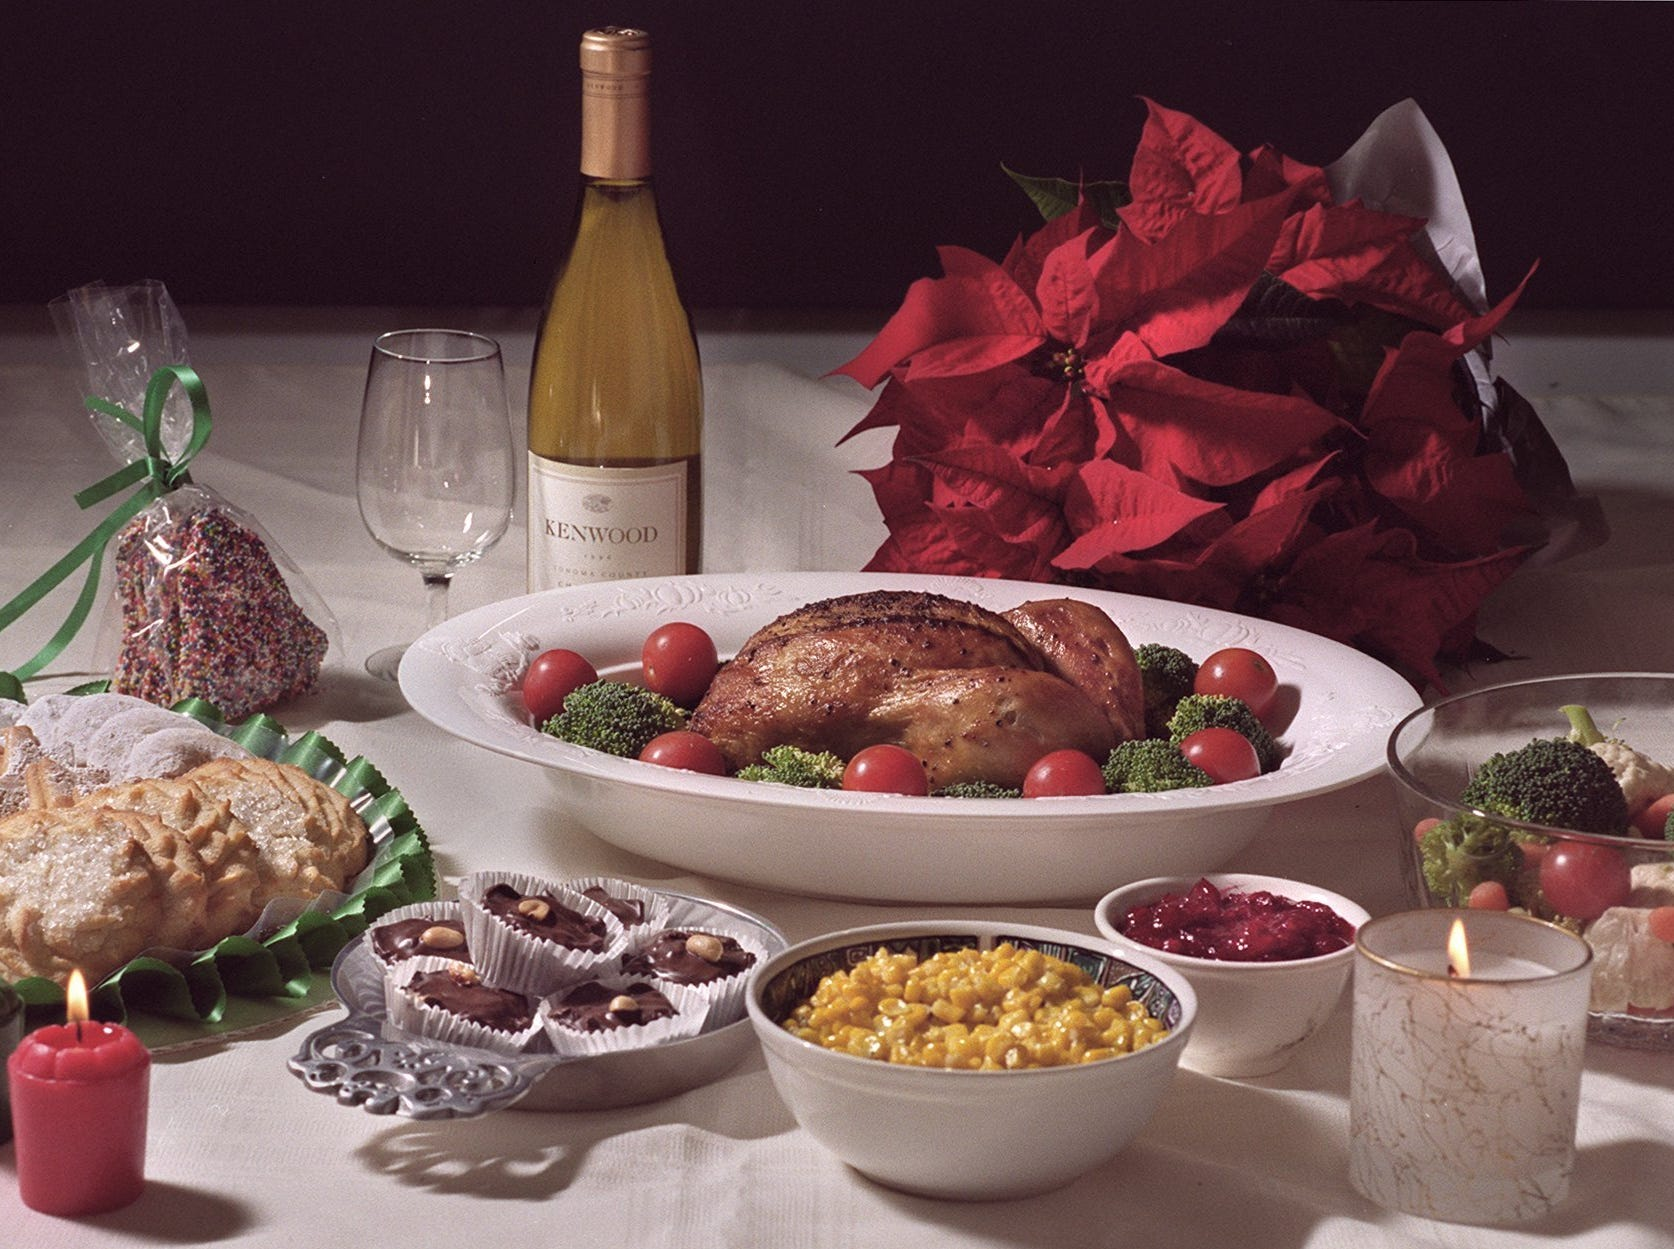 Side dishes play supporting role for Thanksgiving meal